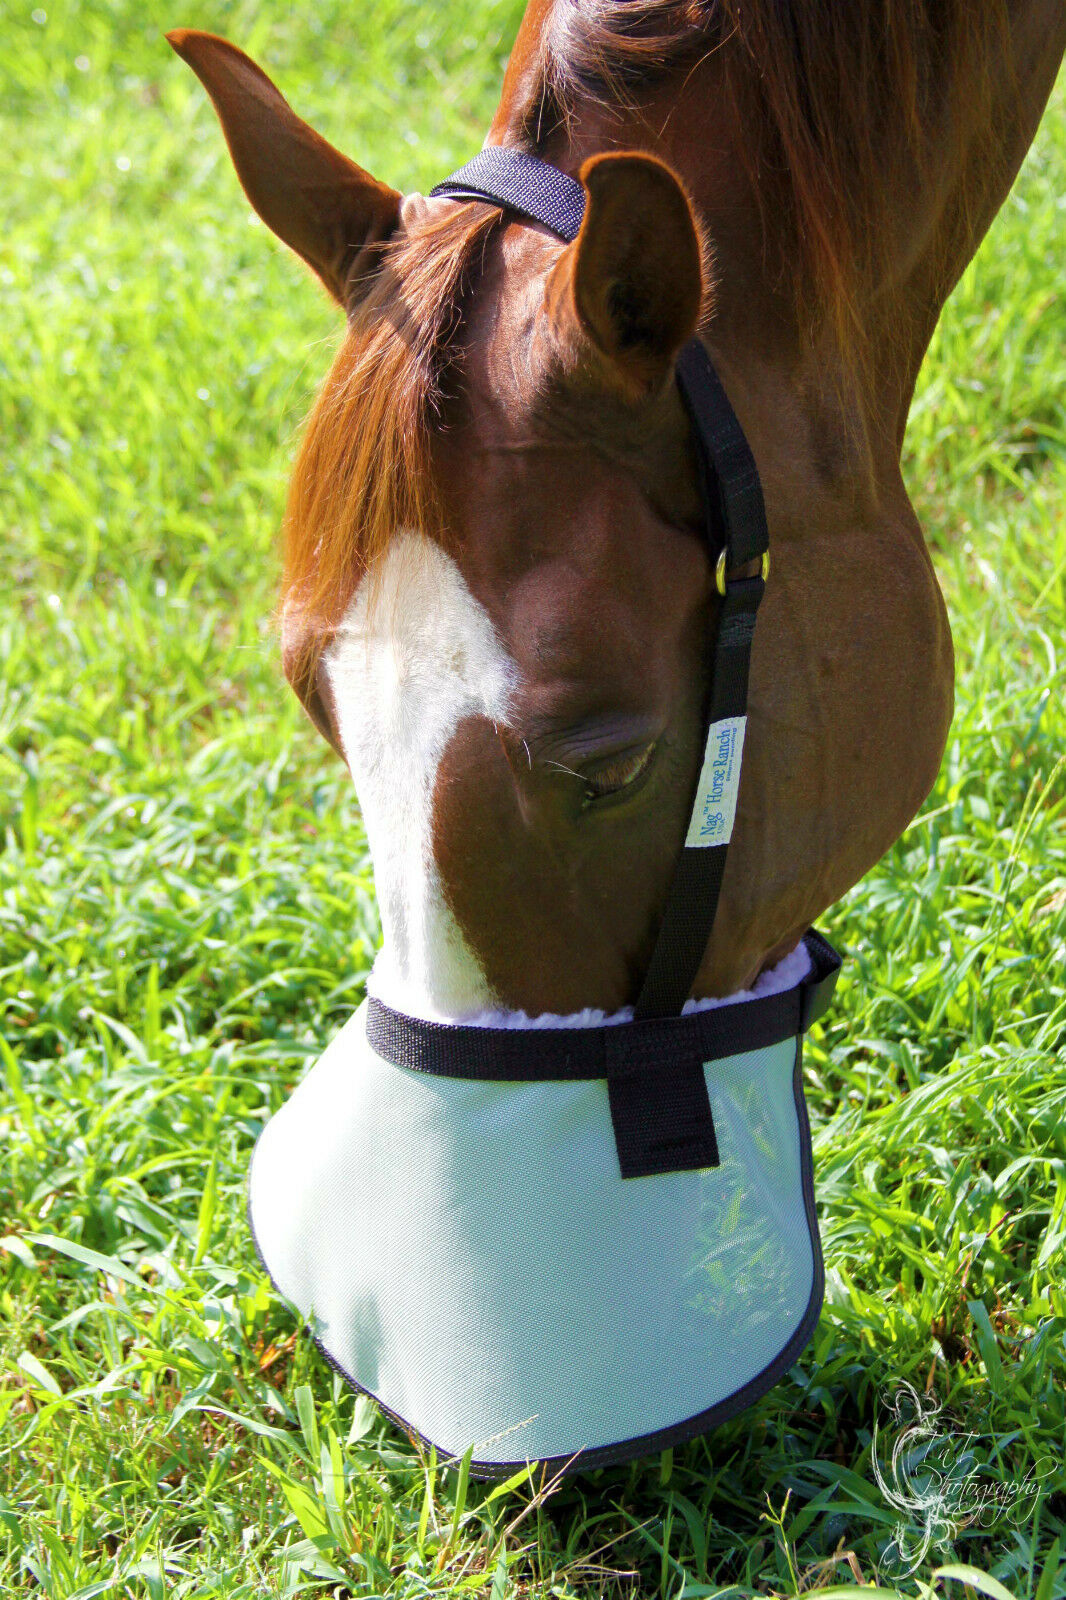 New 90% UV proof shade that covers the horse's entire muzzle w  sheepskin GREAT